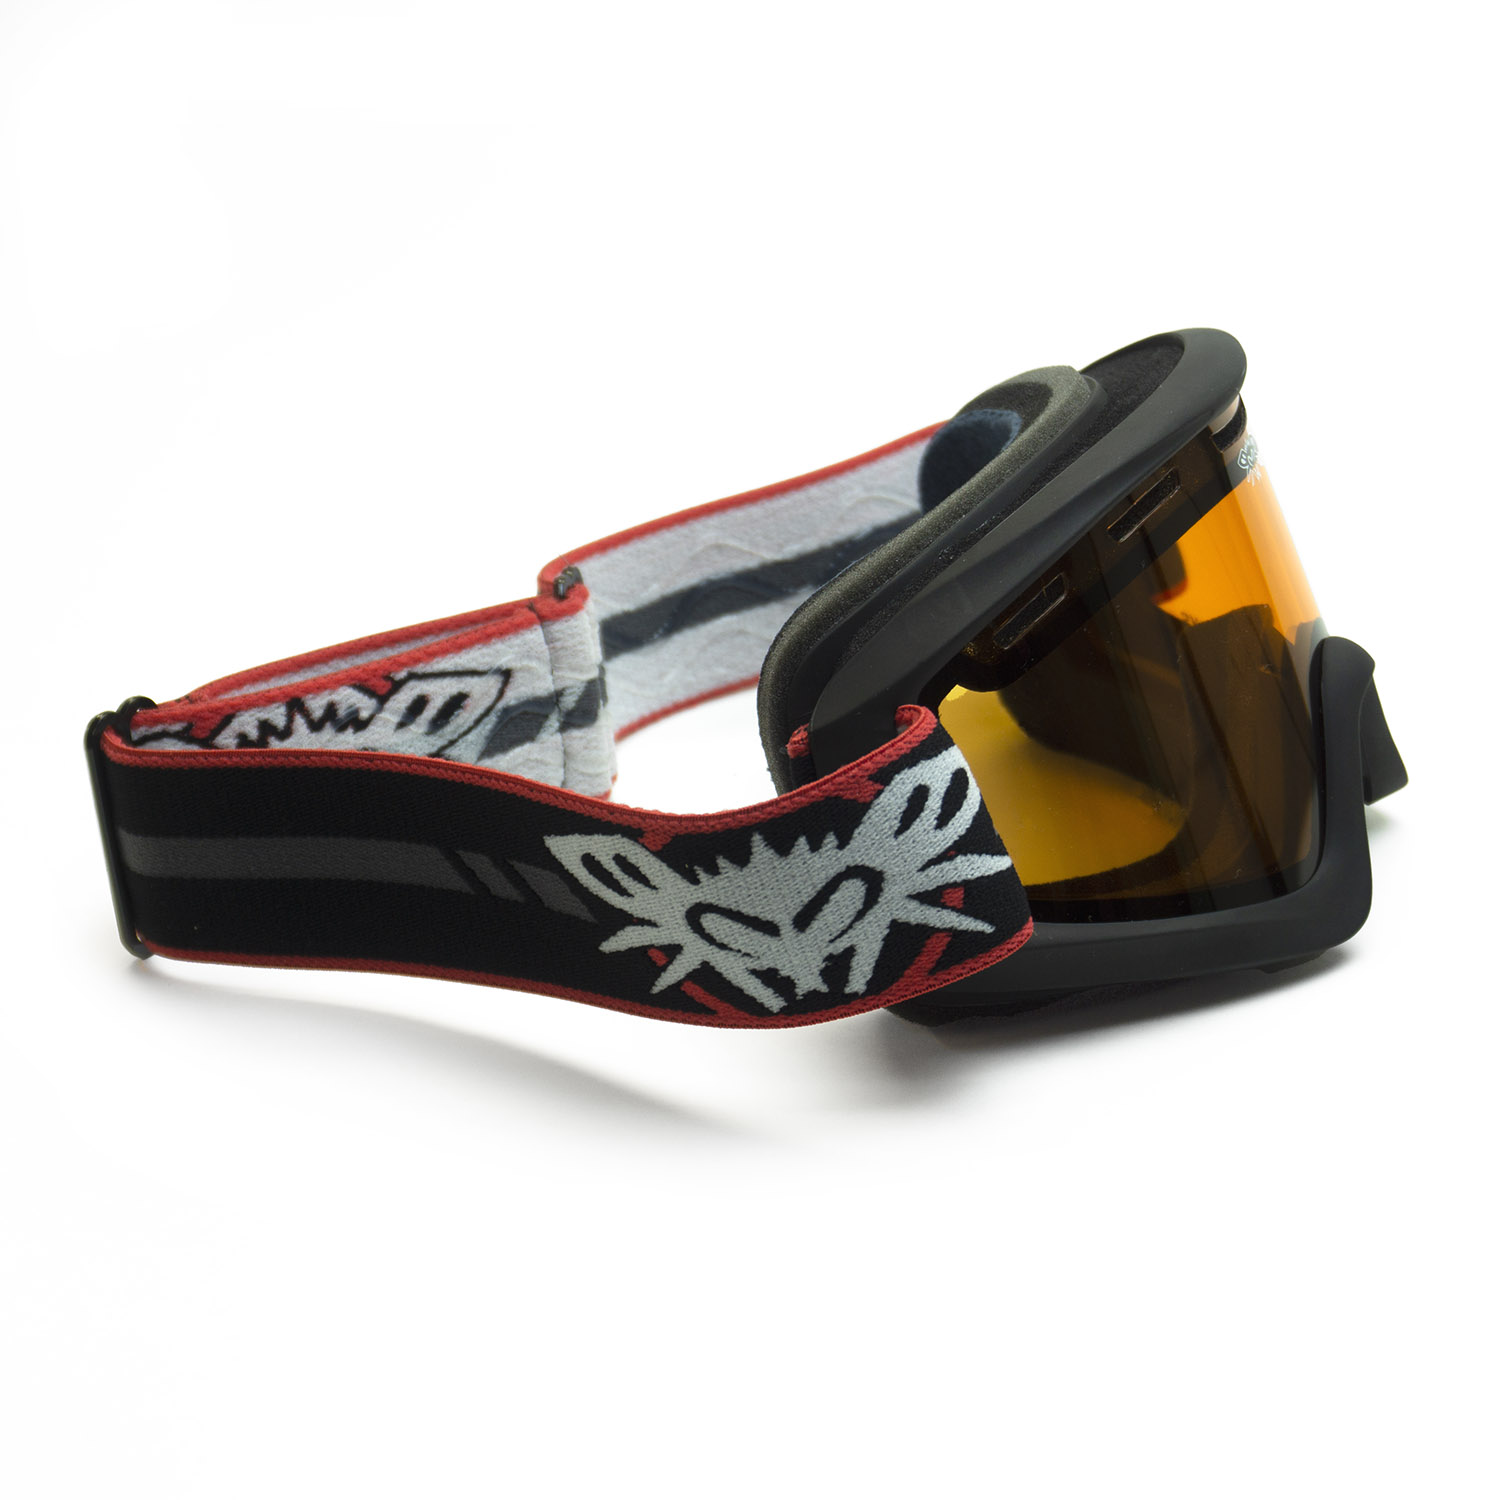 FLY TRAXX SNOW GOGGLE